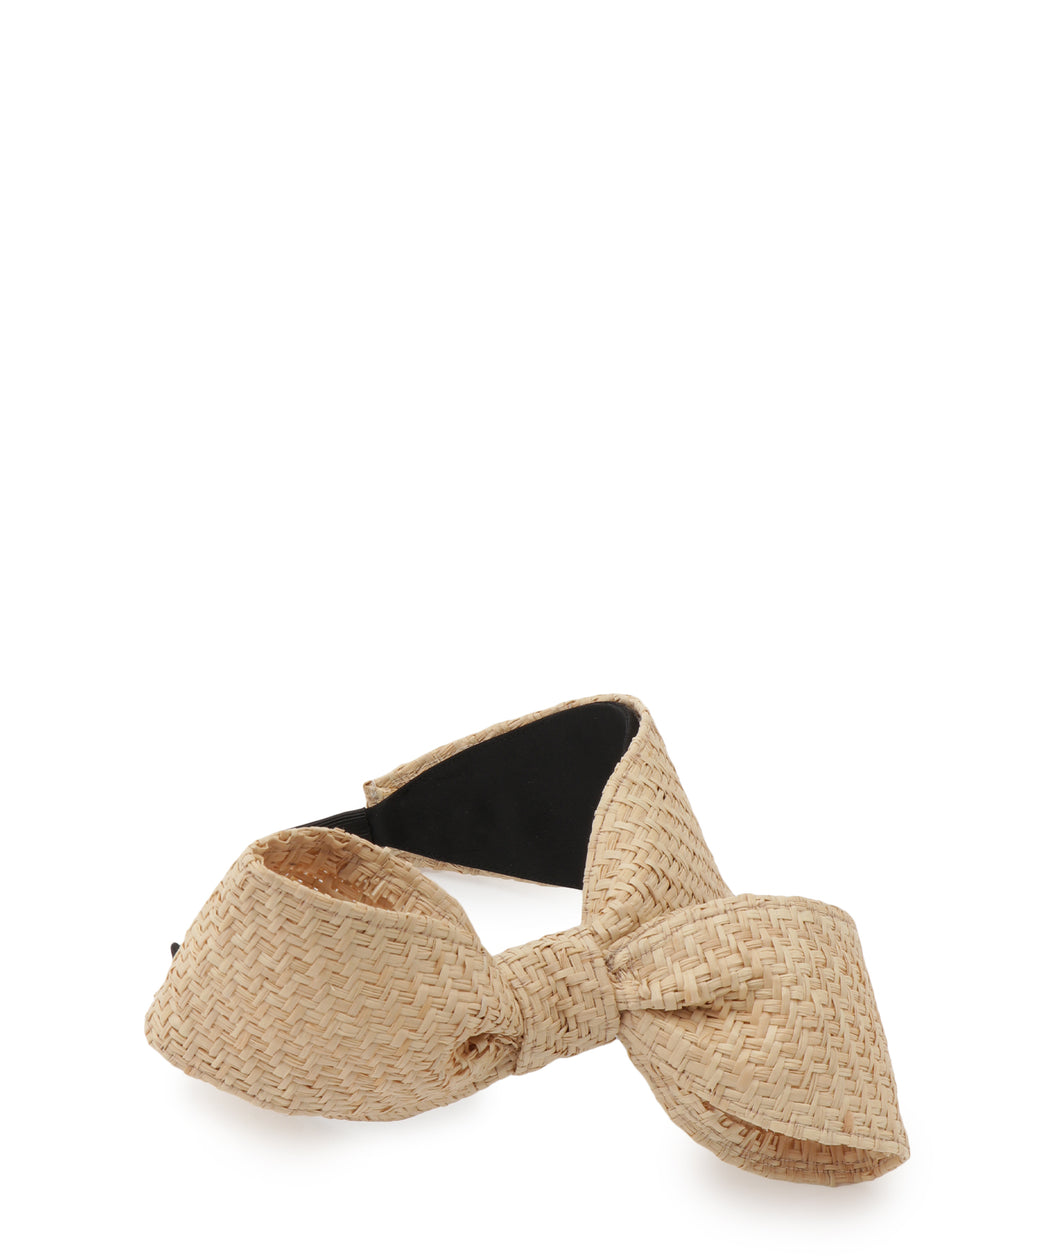 [WEB限定] Raffia ribbon headband